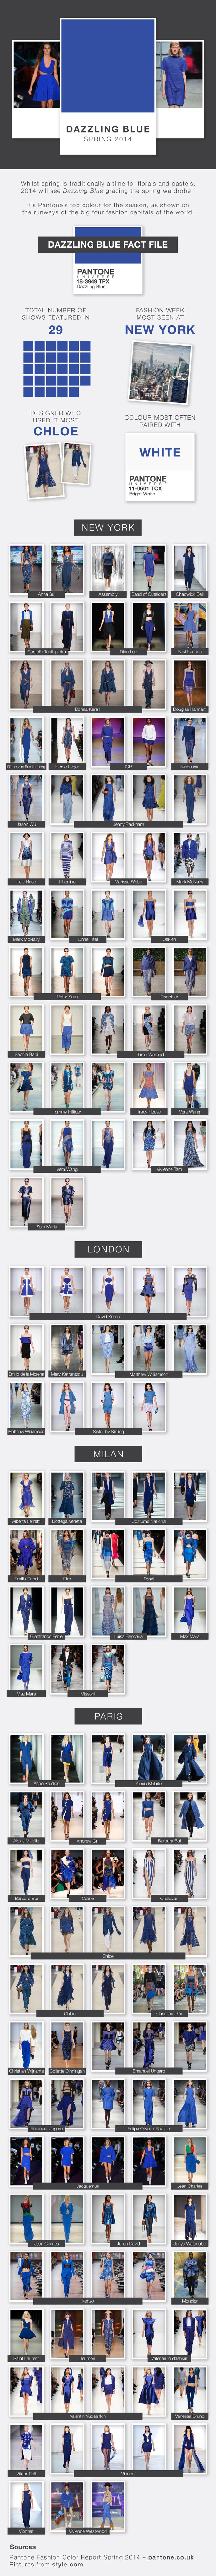 Spring Fashion 2014 Trends-Infographic